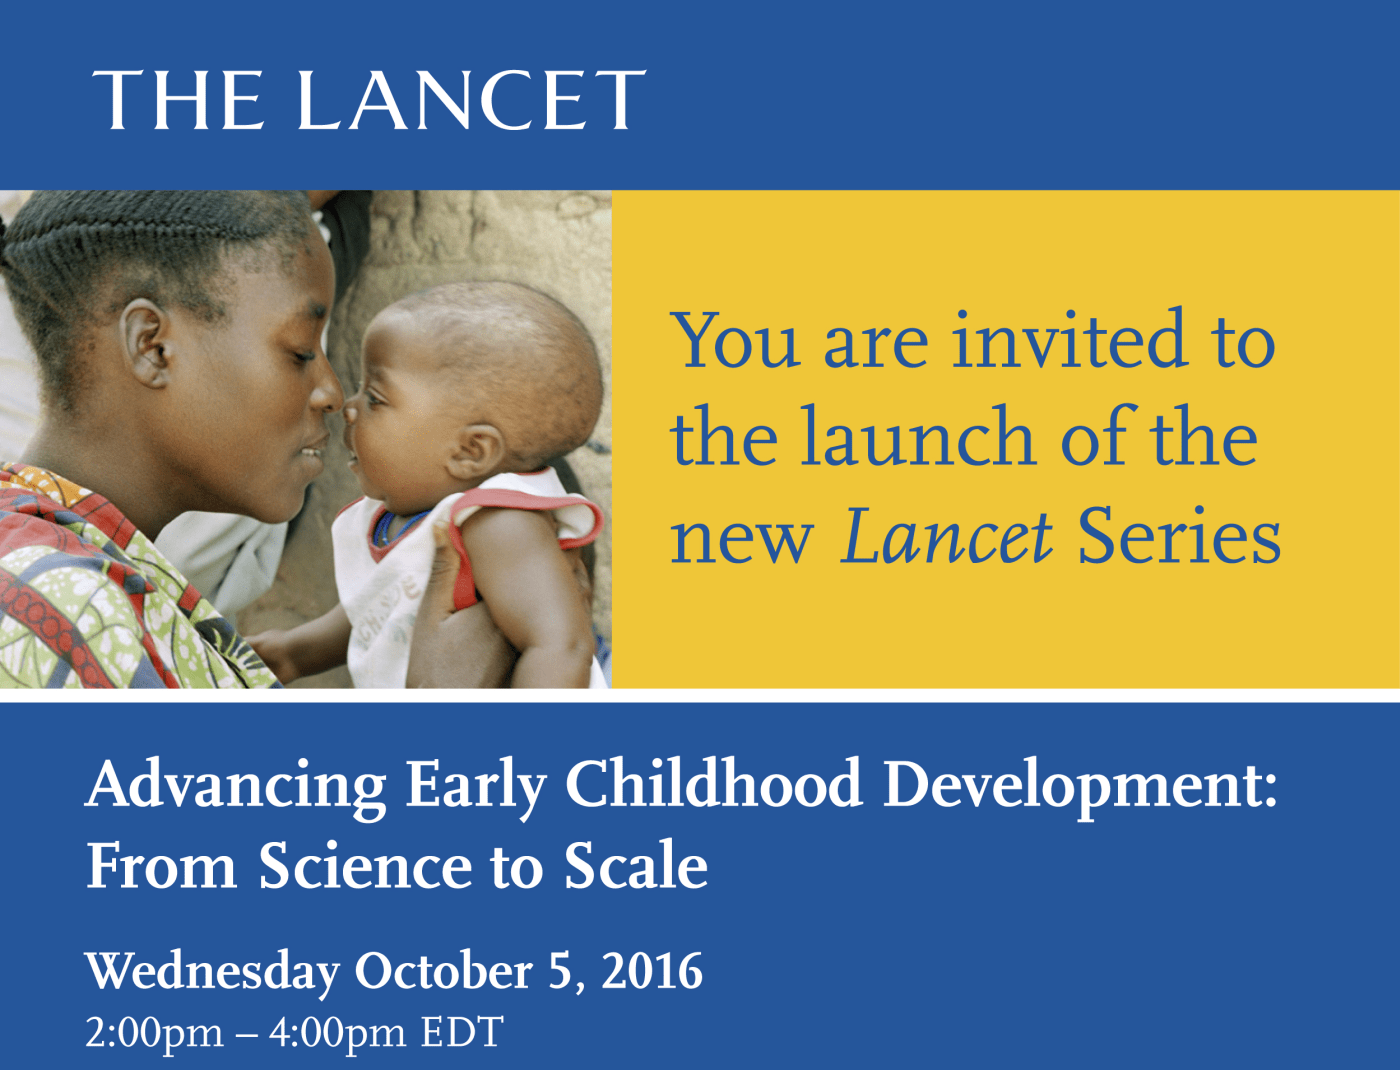 The New Lancet Series: World Bank Global Launch Invitation